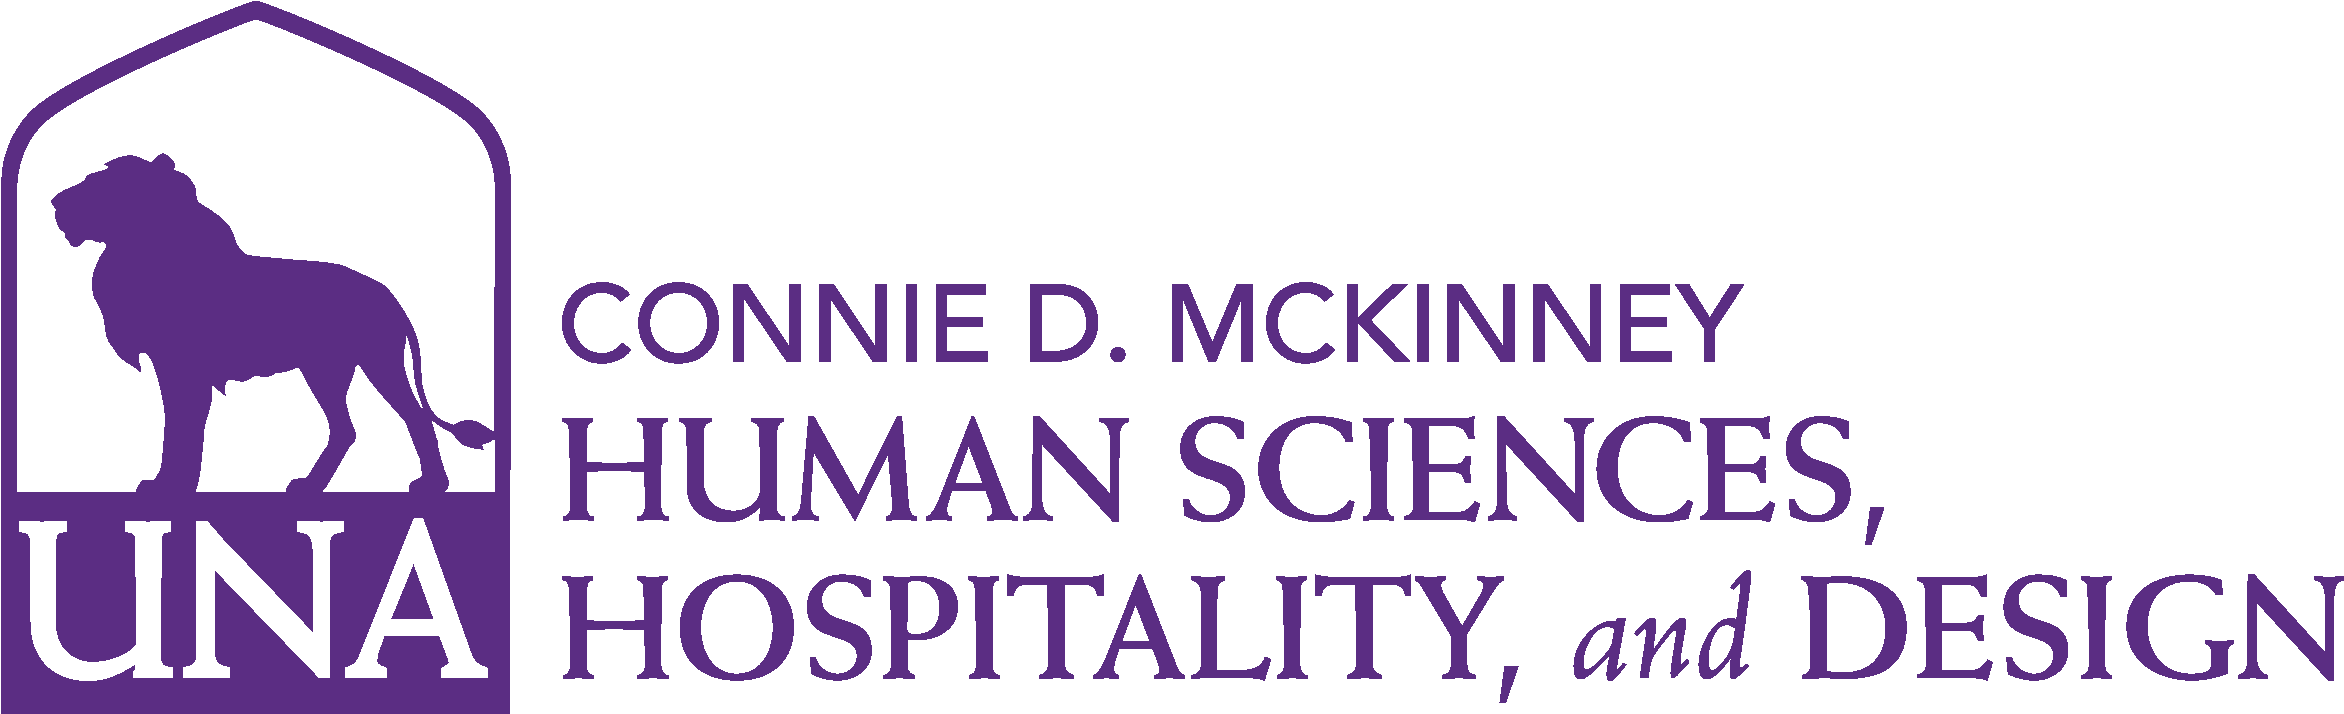 College of Education and Human Services - Human Sciences and Hospitality Design Logo - Purple - Version 3